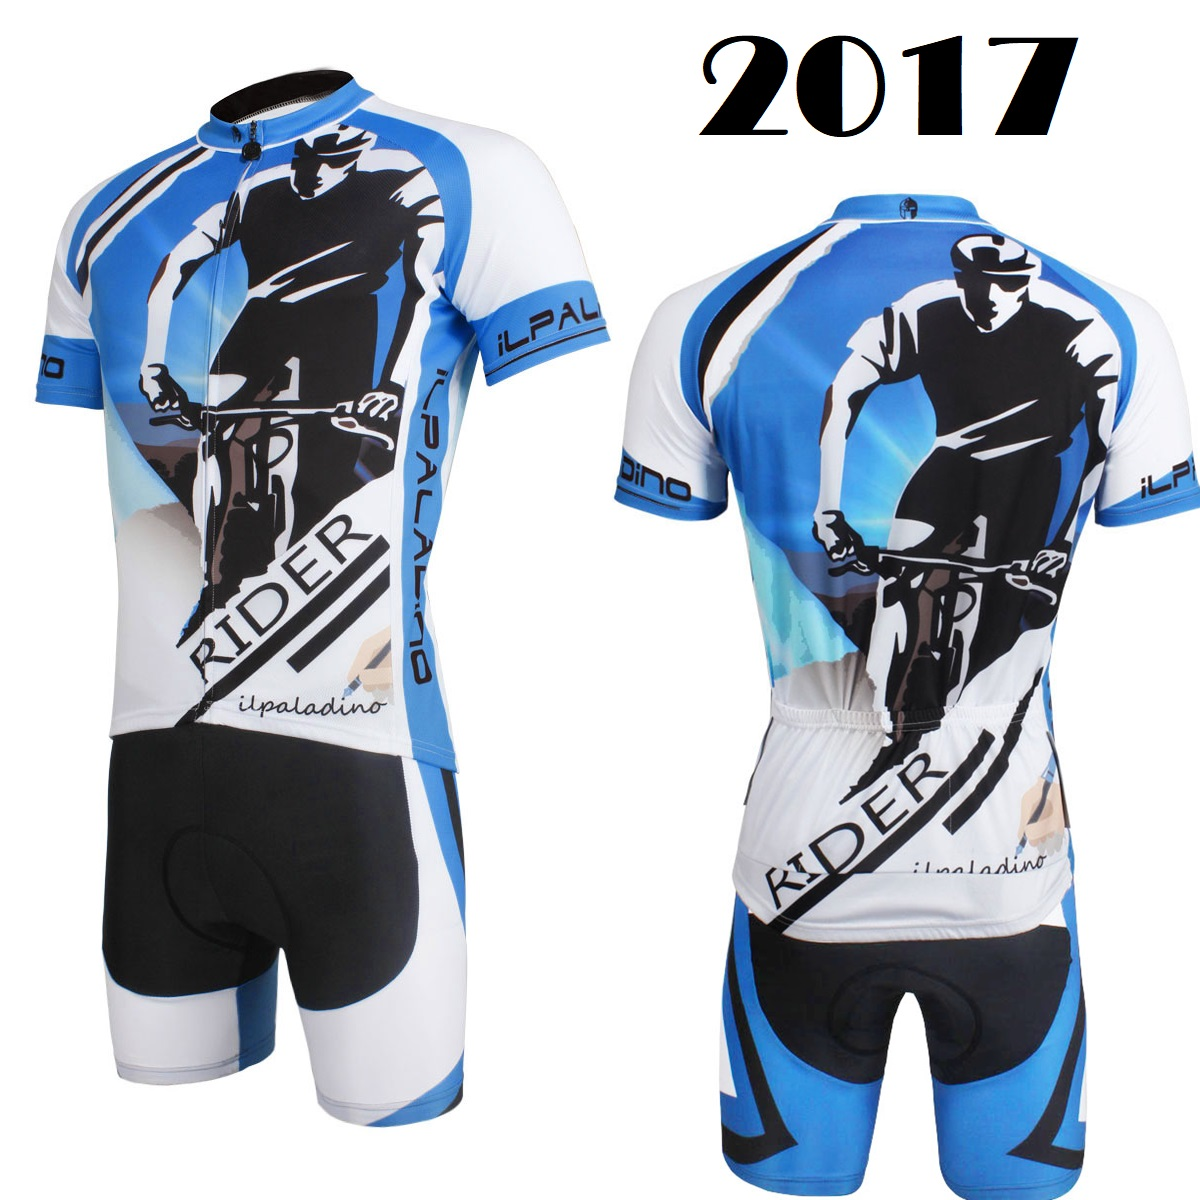 PALADIN Team Cycling Jerseys 2017 Short Sleeve Cycling Wear Bike Road Racing Jersey BIB Bicycle Clothing Free Shipping QI17DT758 male team cycling jerseys autumn cycling clothes long sleeve bike jersey winter fleece bicycle riding suits free shipping